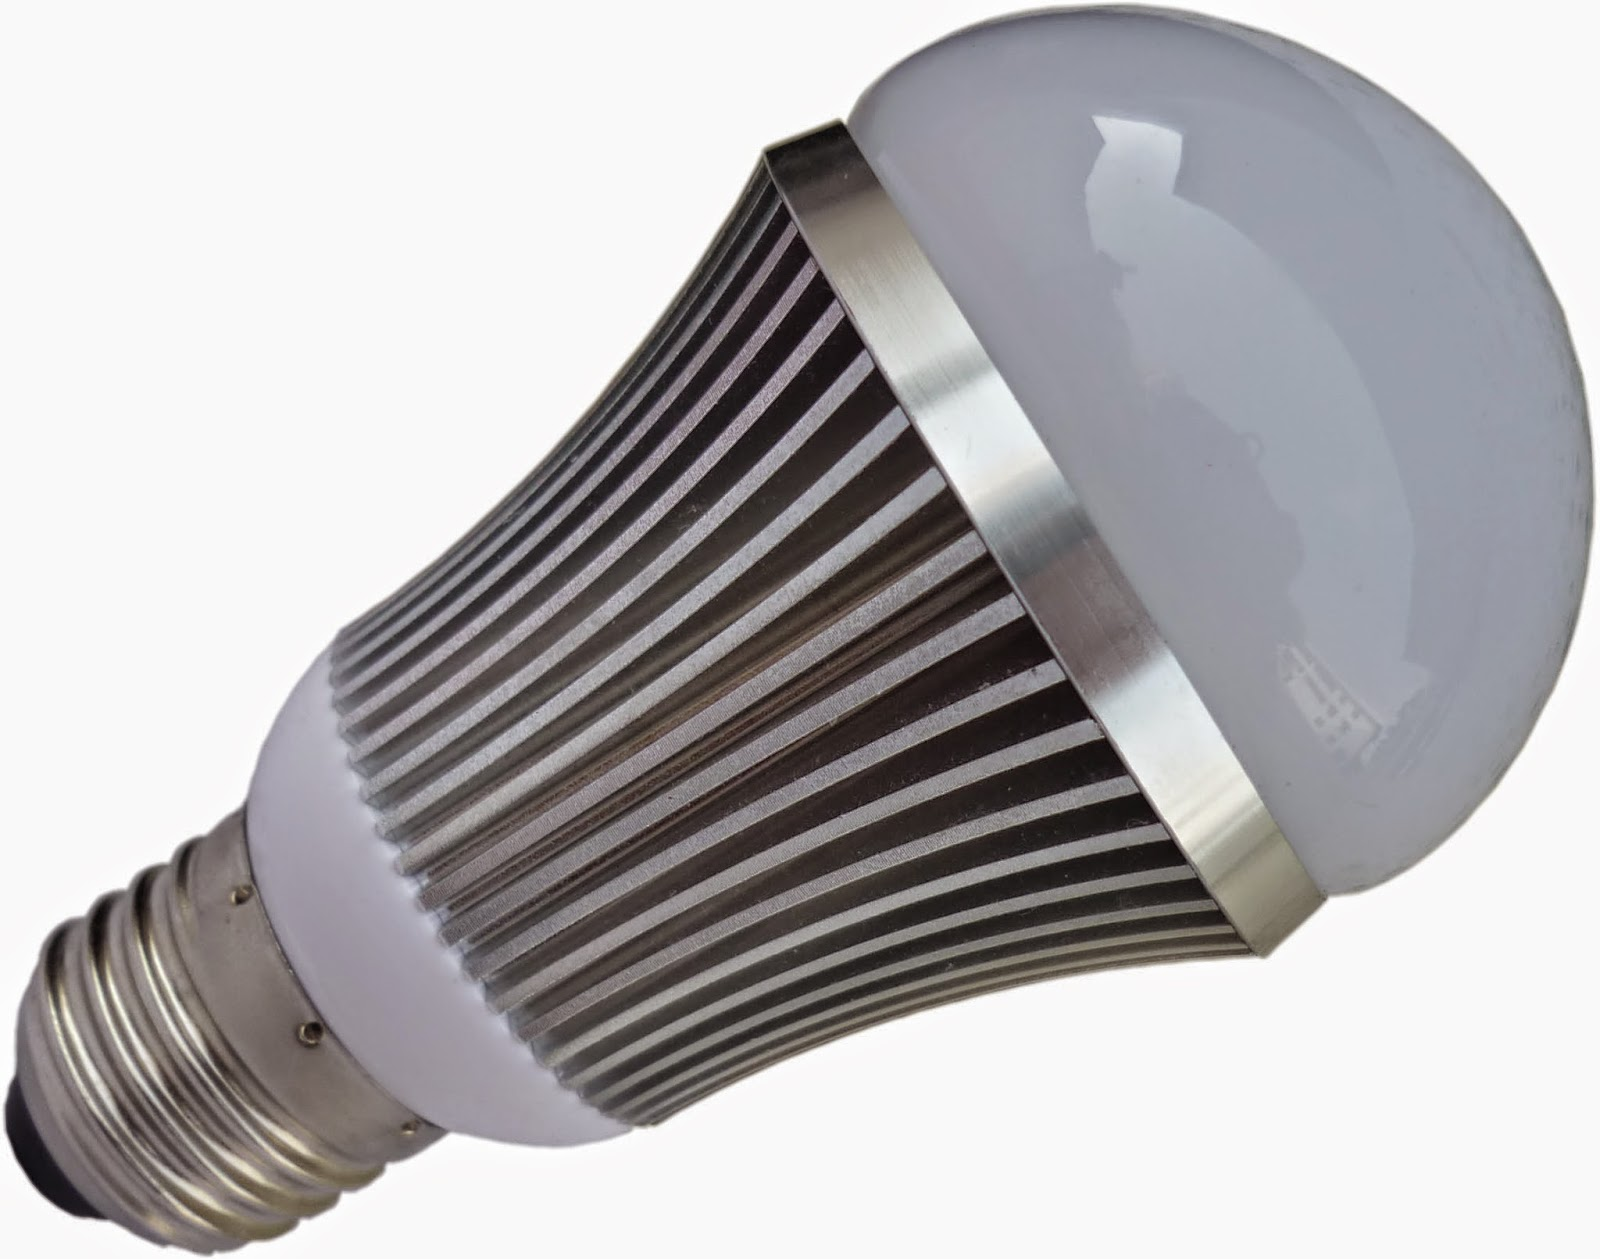 Commercial lighting sale on led bulbs in mumbai india led lights manufacturers in india Bulbs led